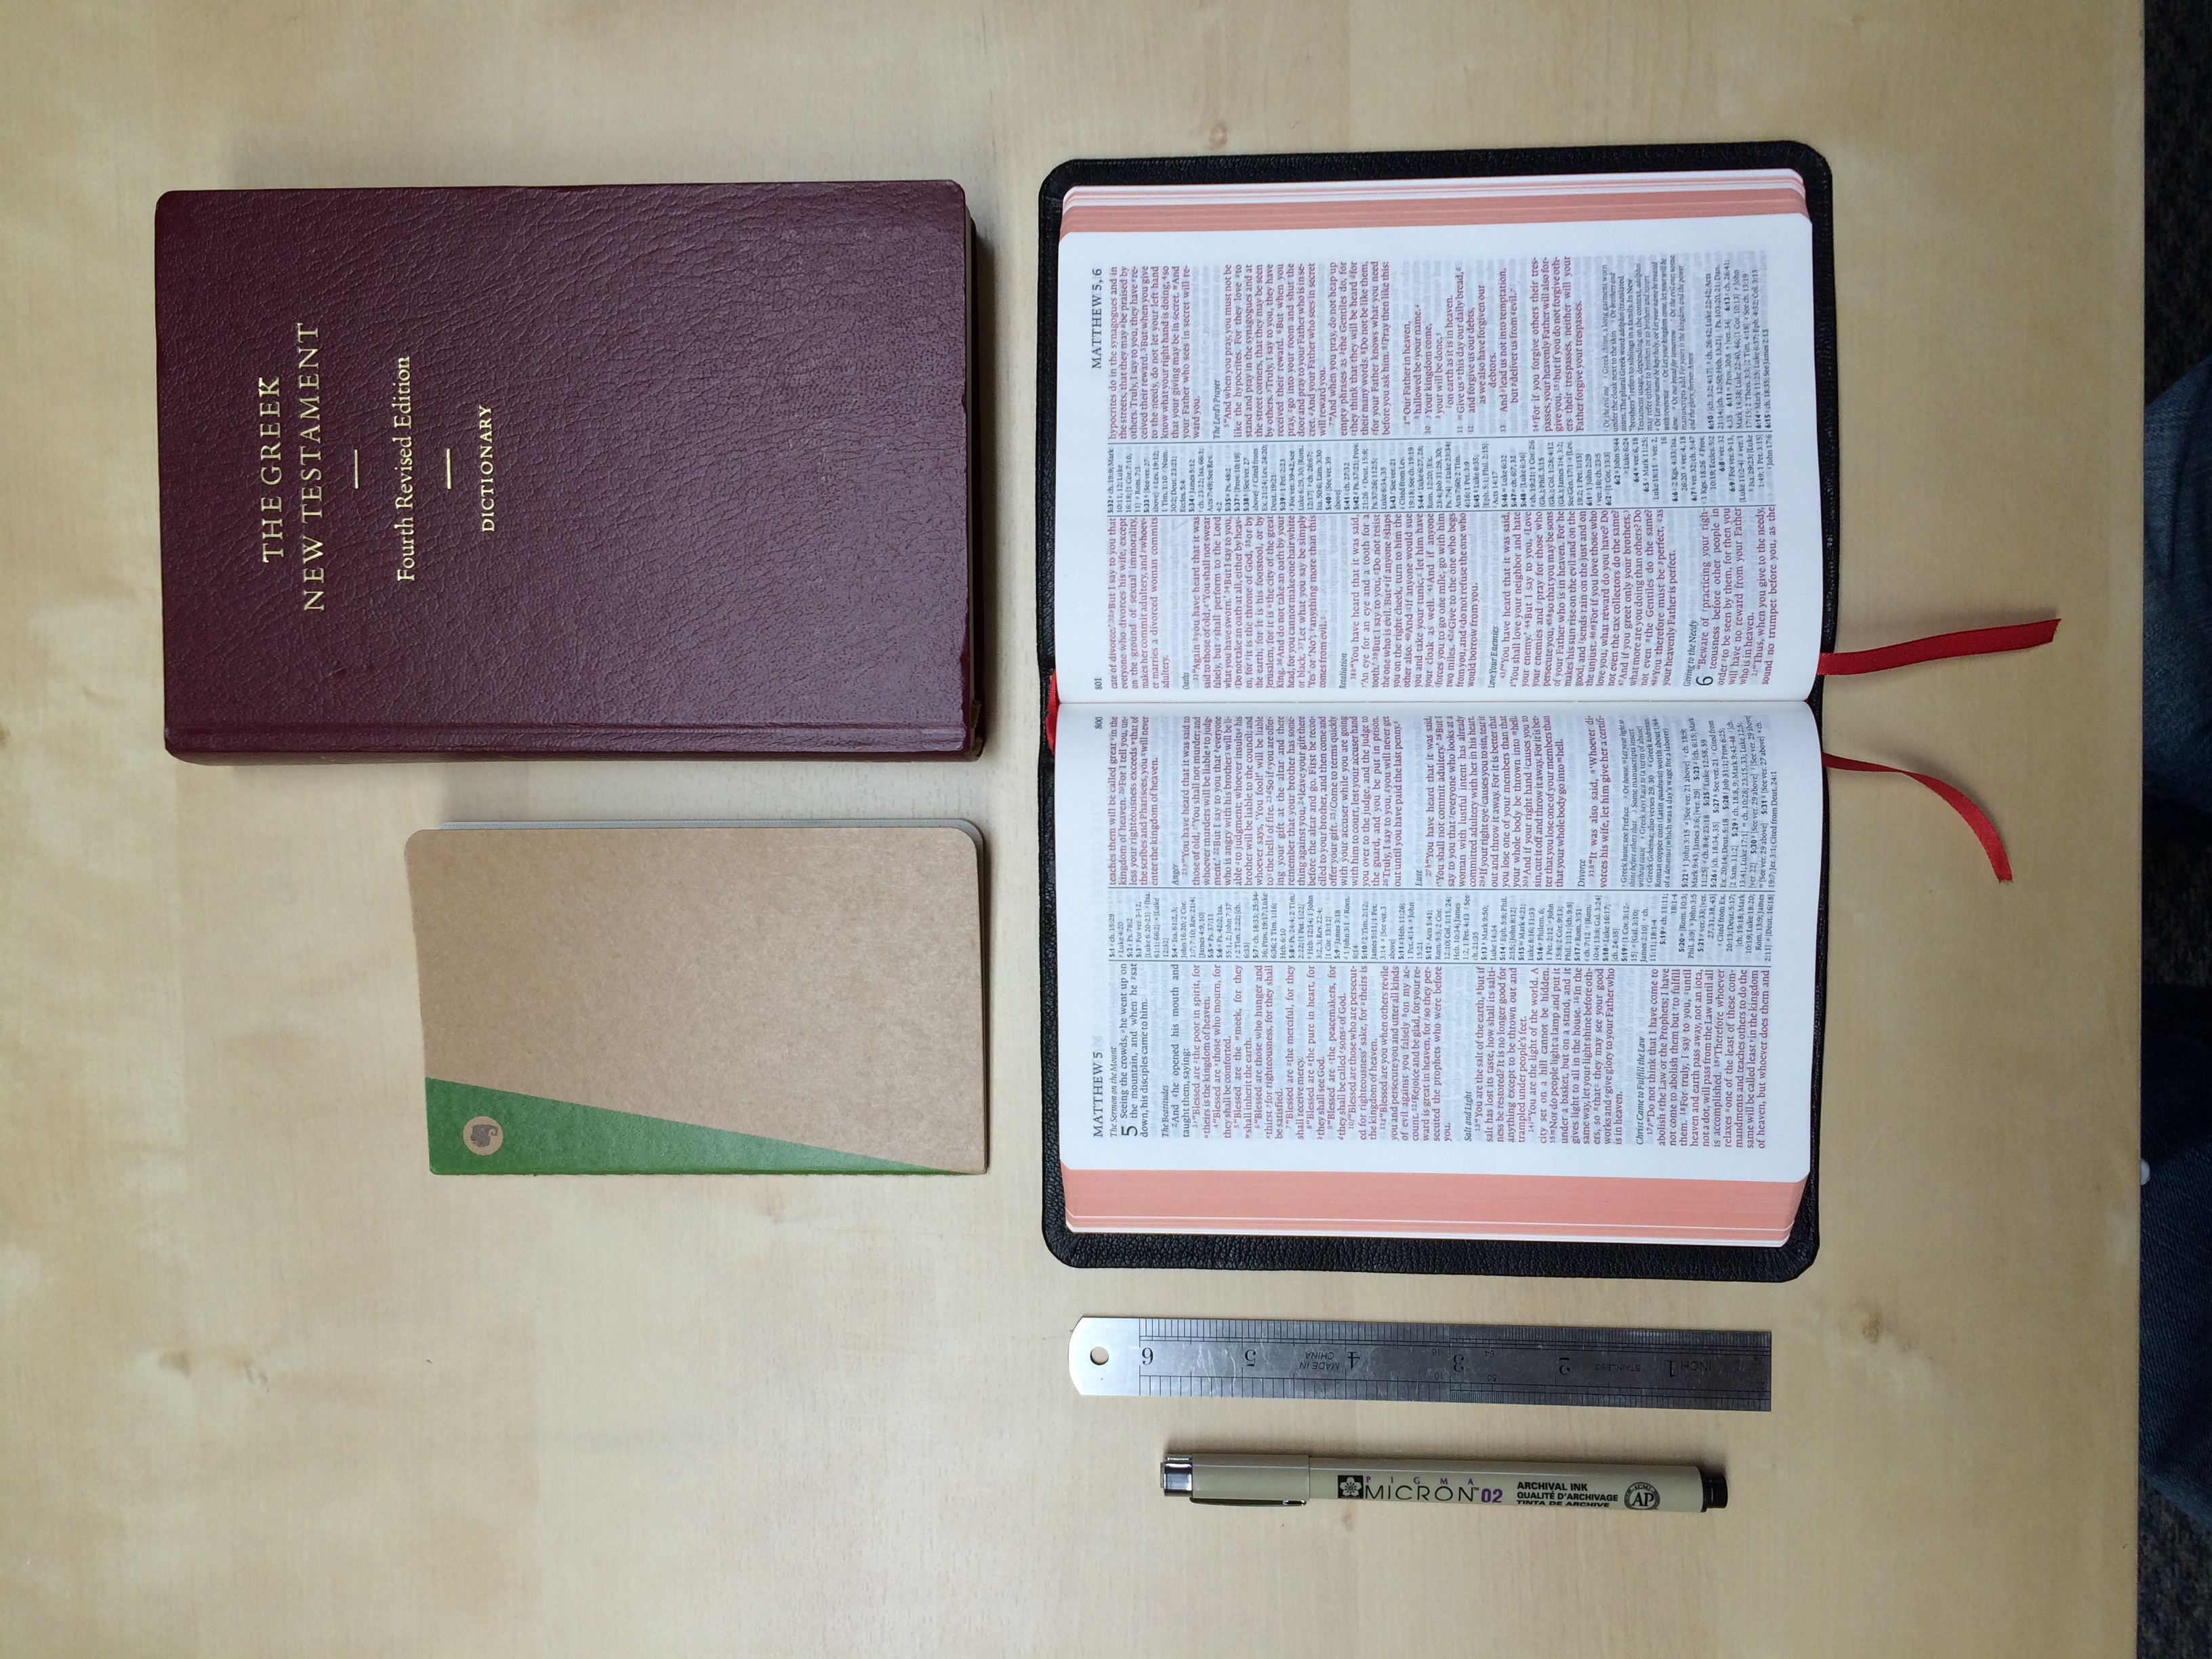 The Cambridge ESV Bible (bottom) in size as compared to other objects. Click for larger view.